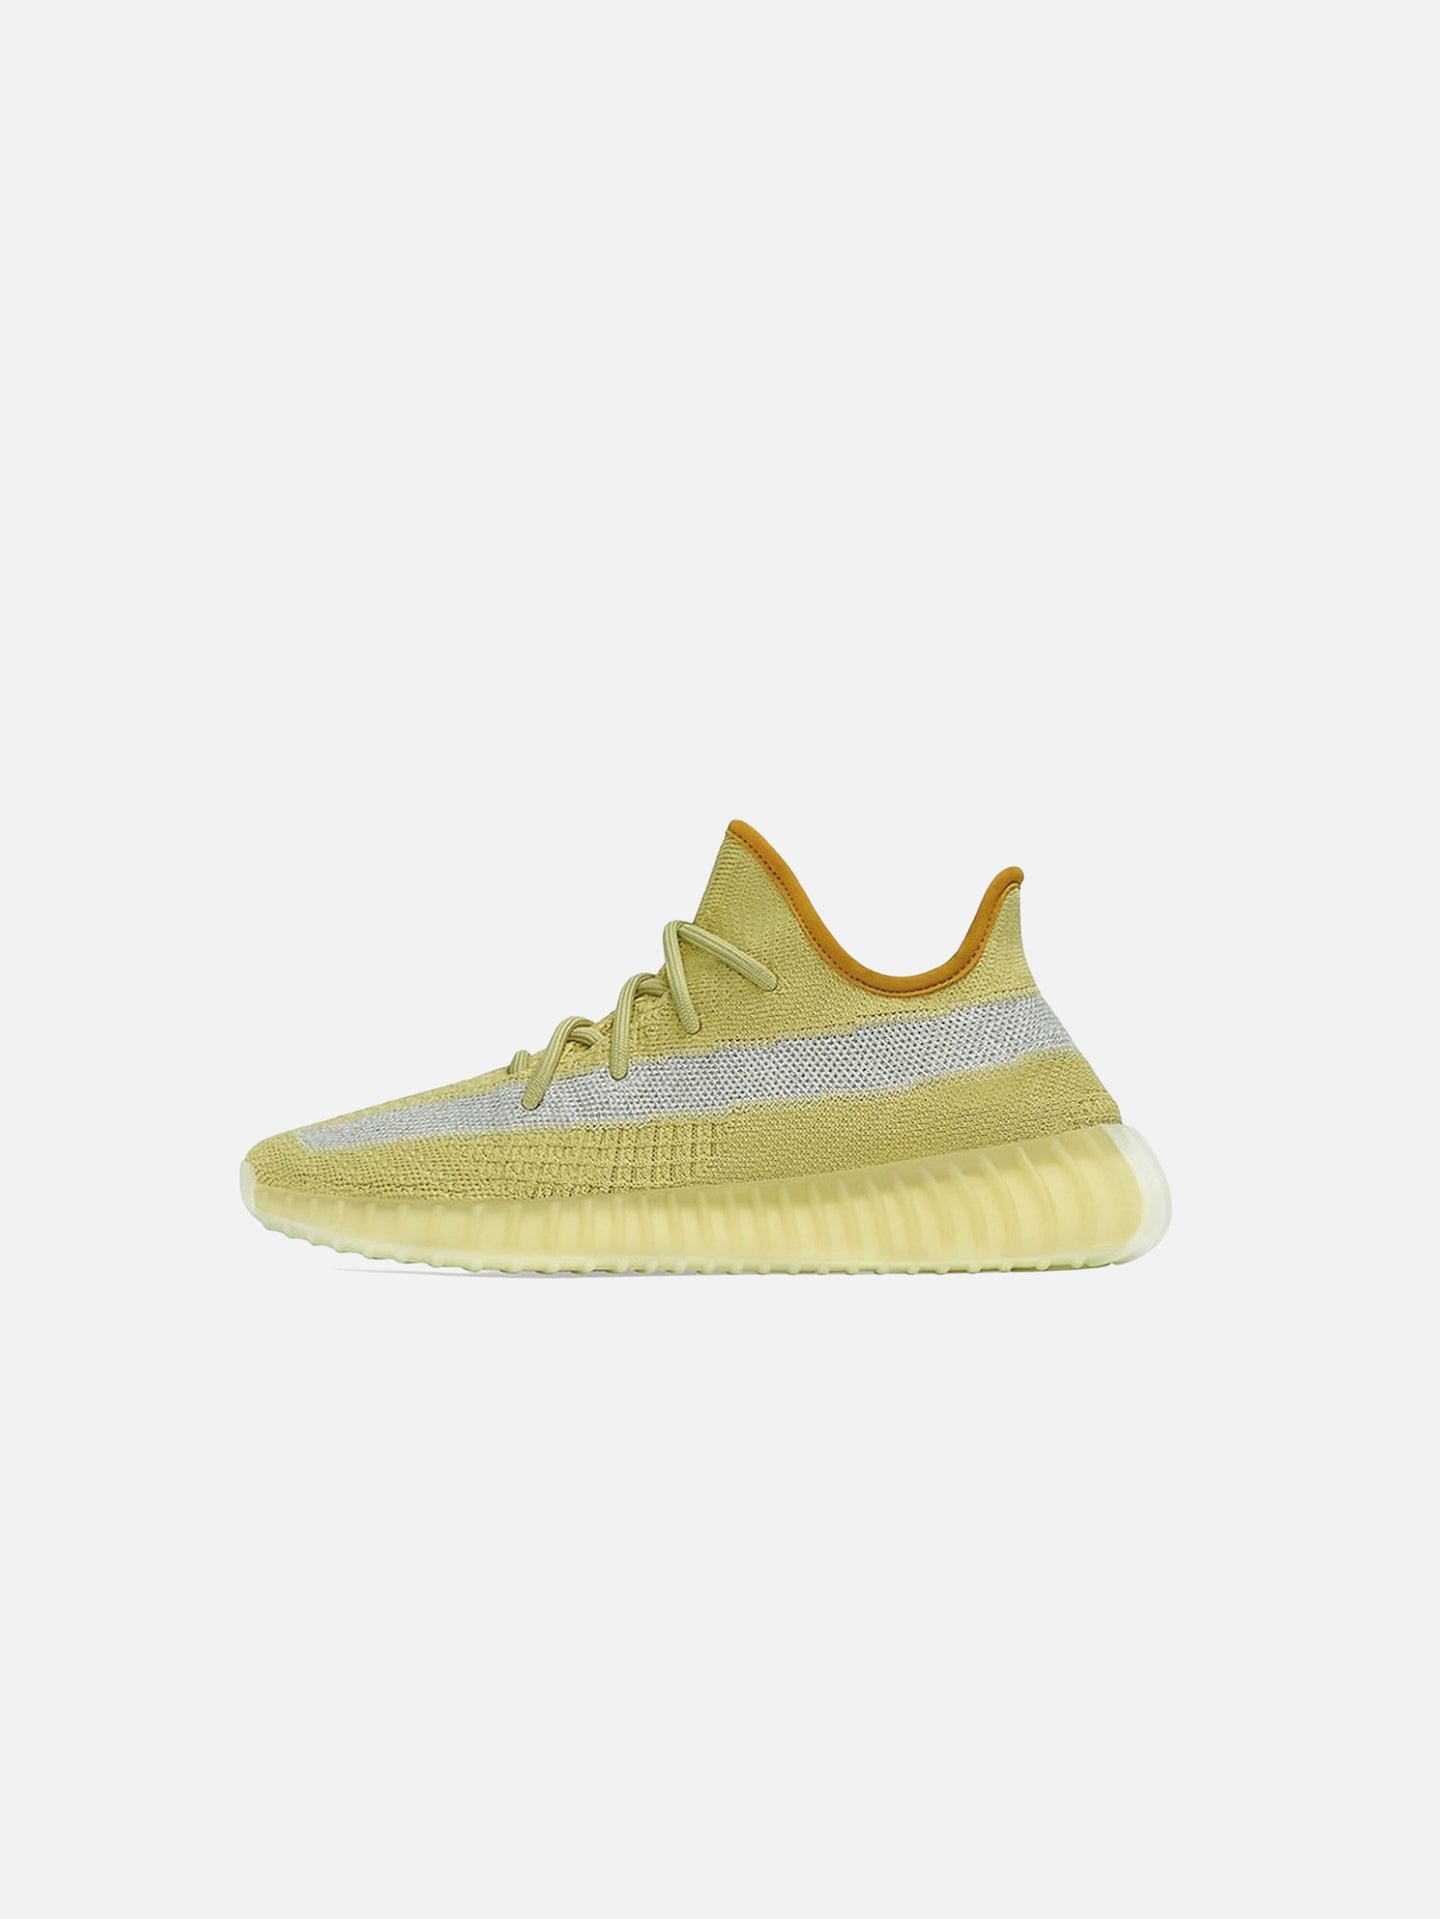 YEEZY BOOST 350 V2: MARSH (W)